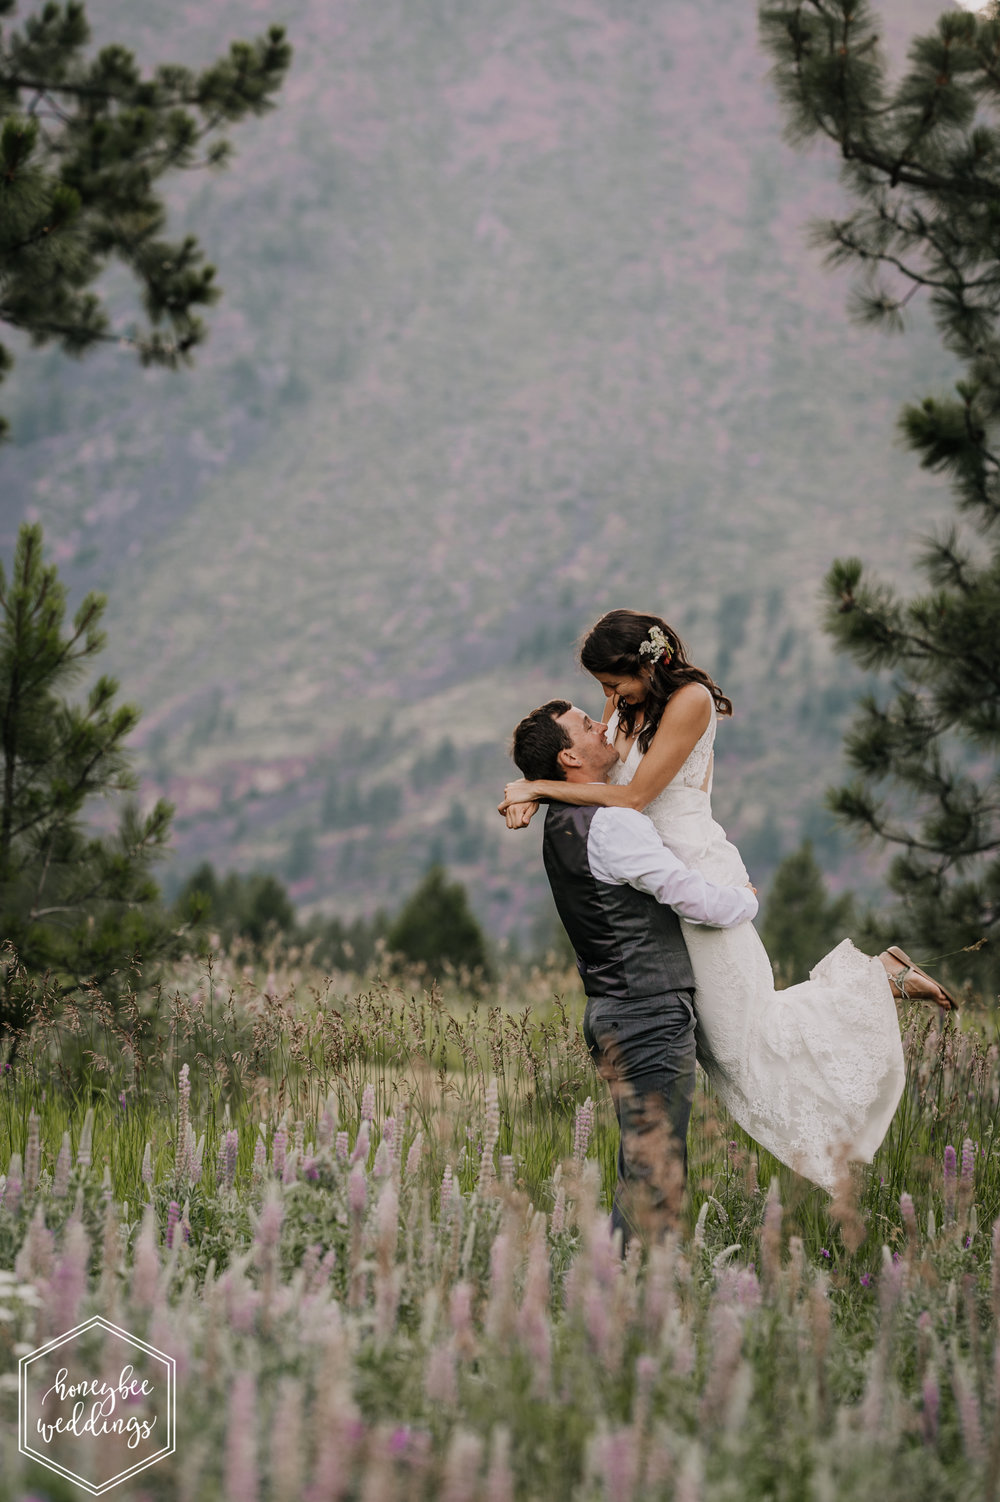 530 White Raven Wedding_Montana Wedding Photographer_Honeybee Weddings_ Meghan Maloney + Arza Hammond 2018-9484.jpg